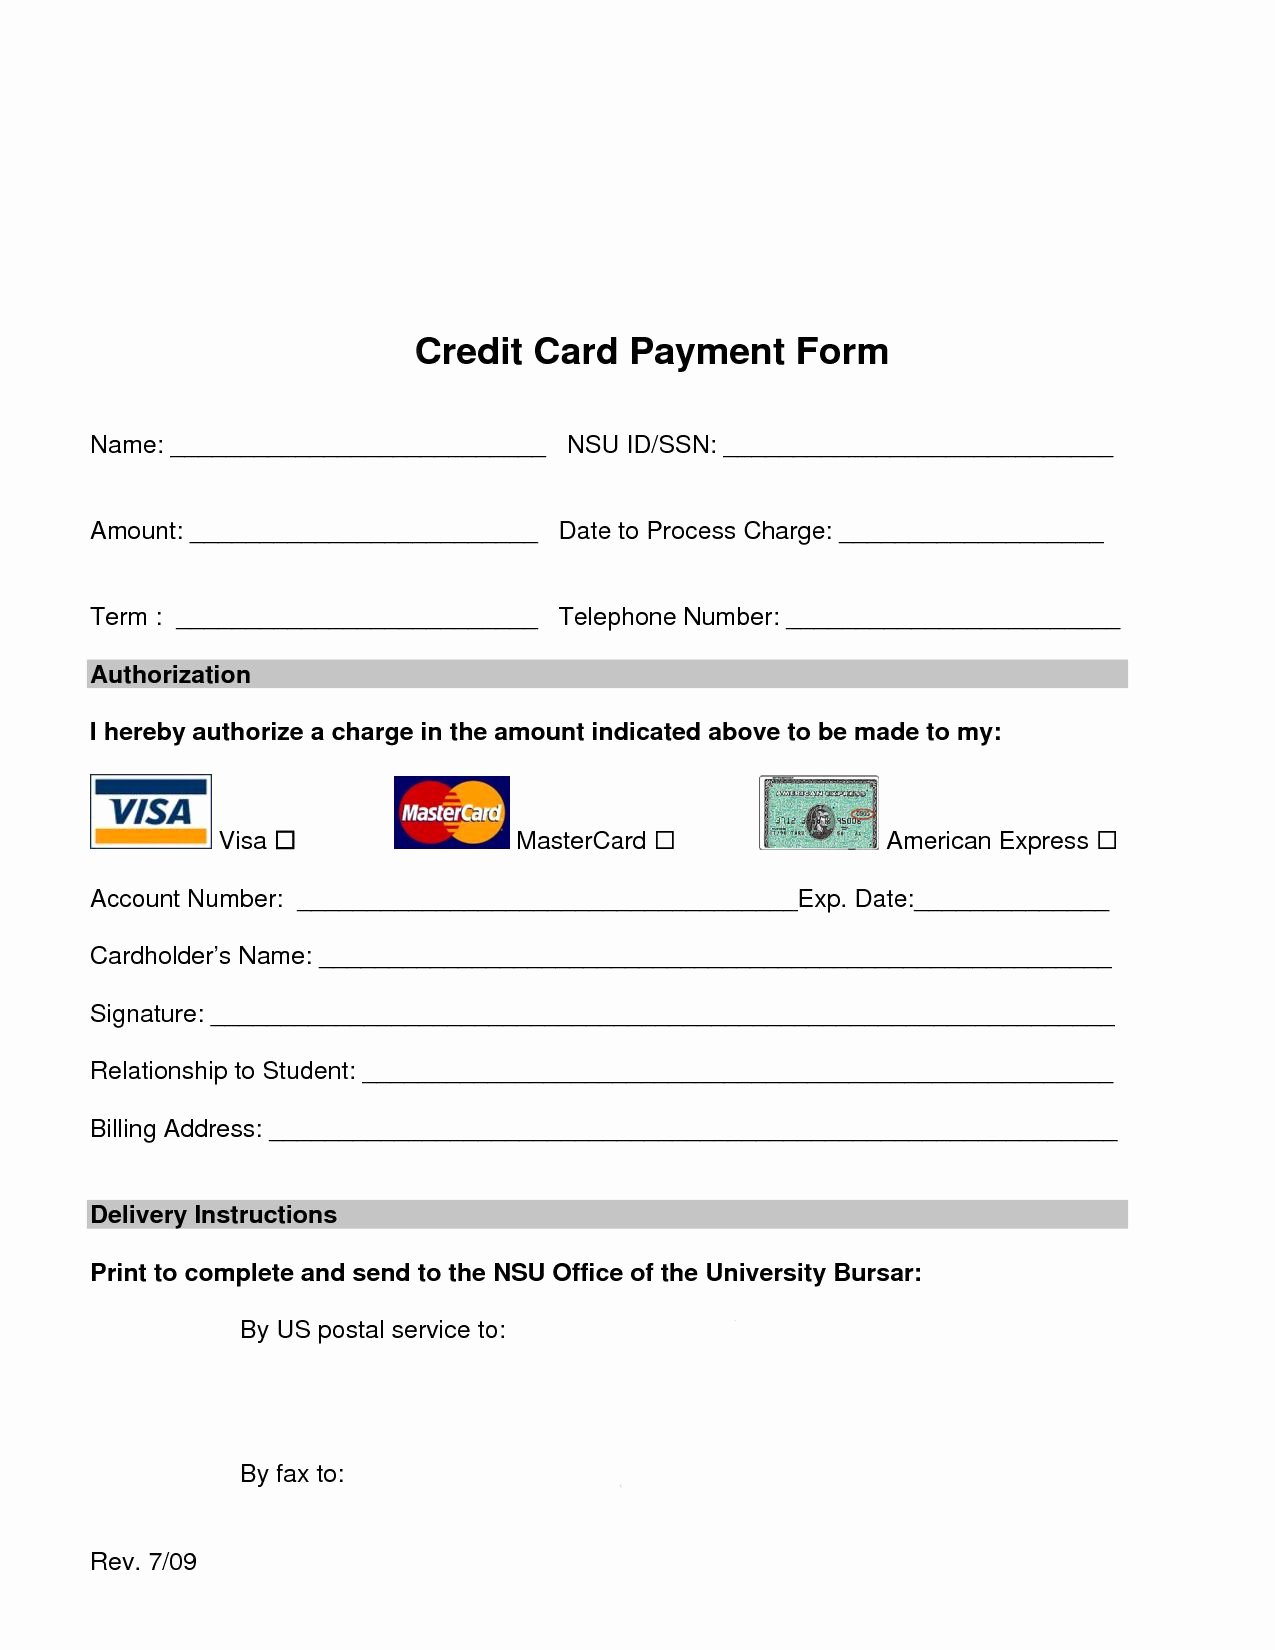 Credit Card Authorization form Word Fresh Credit Card Processing form Web Design